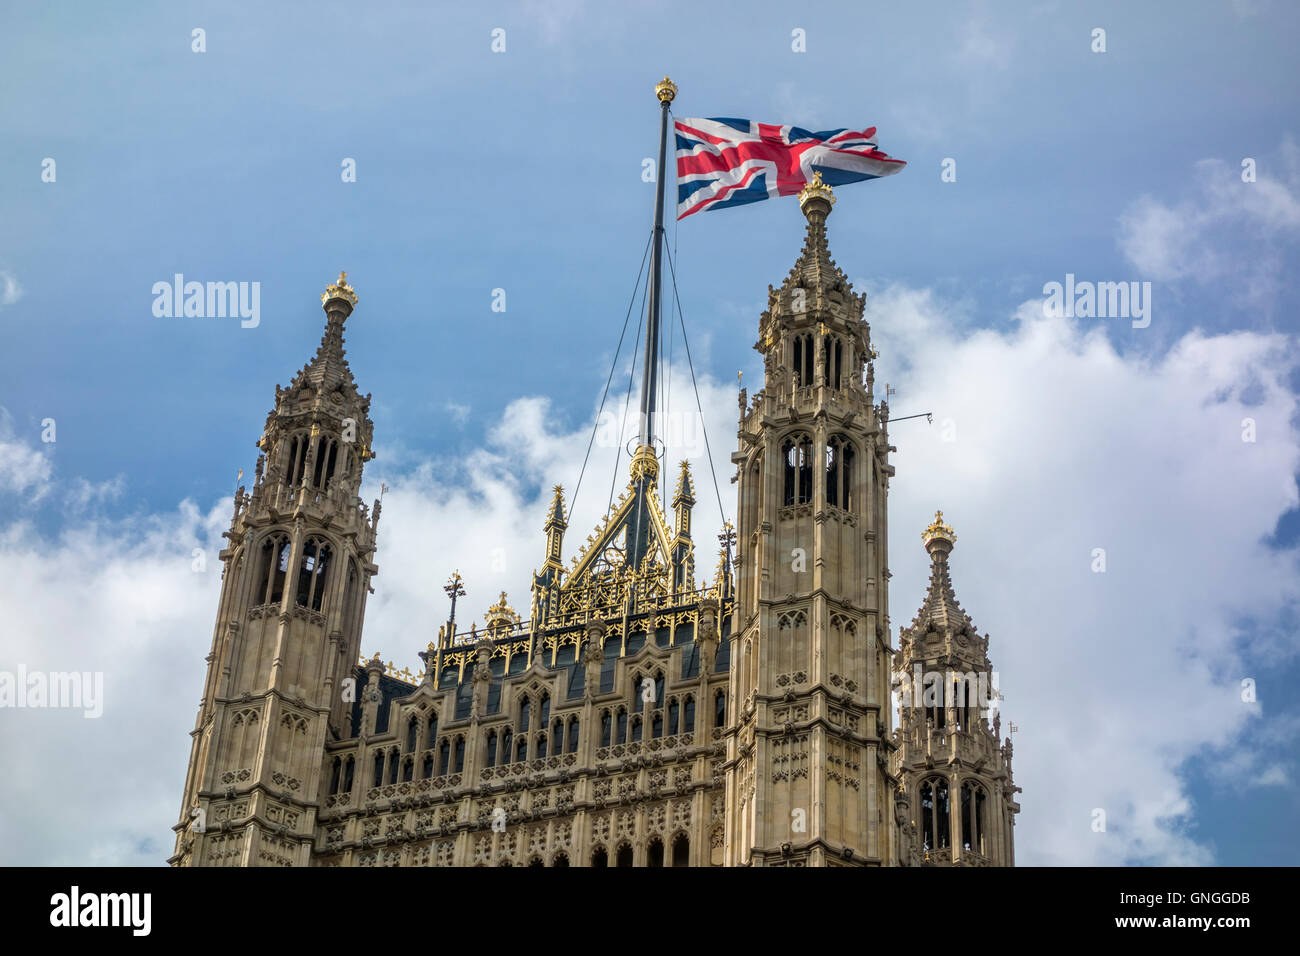 L'Union, survolant tour Victoria, chambres du Parlement. London, UK Photo Stock